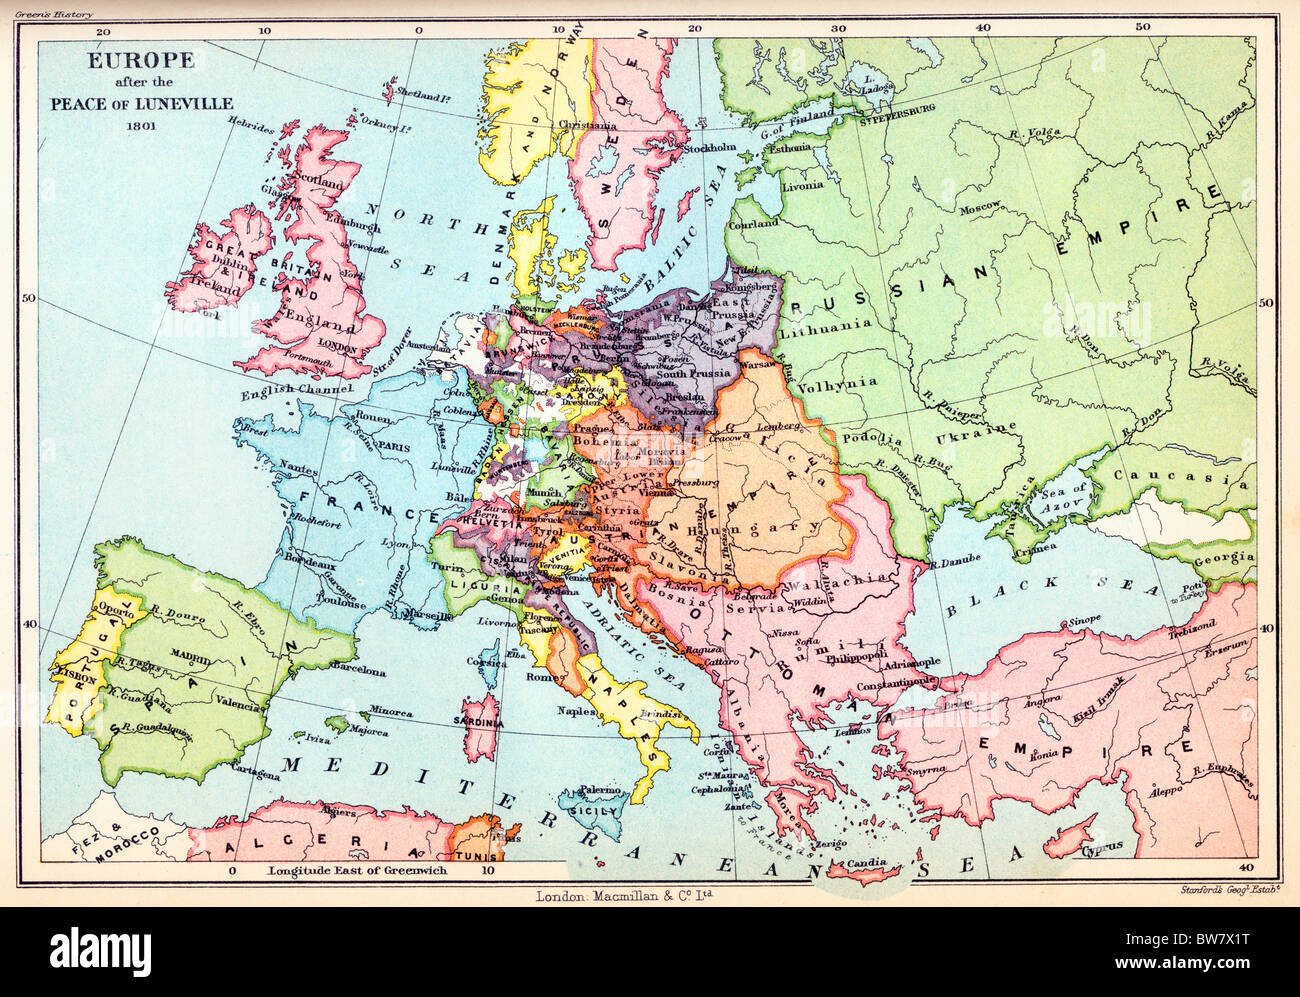 A Map of Europe after the Peace of Luneville, 1801; Colour Illustration; - Stock Image